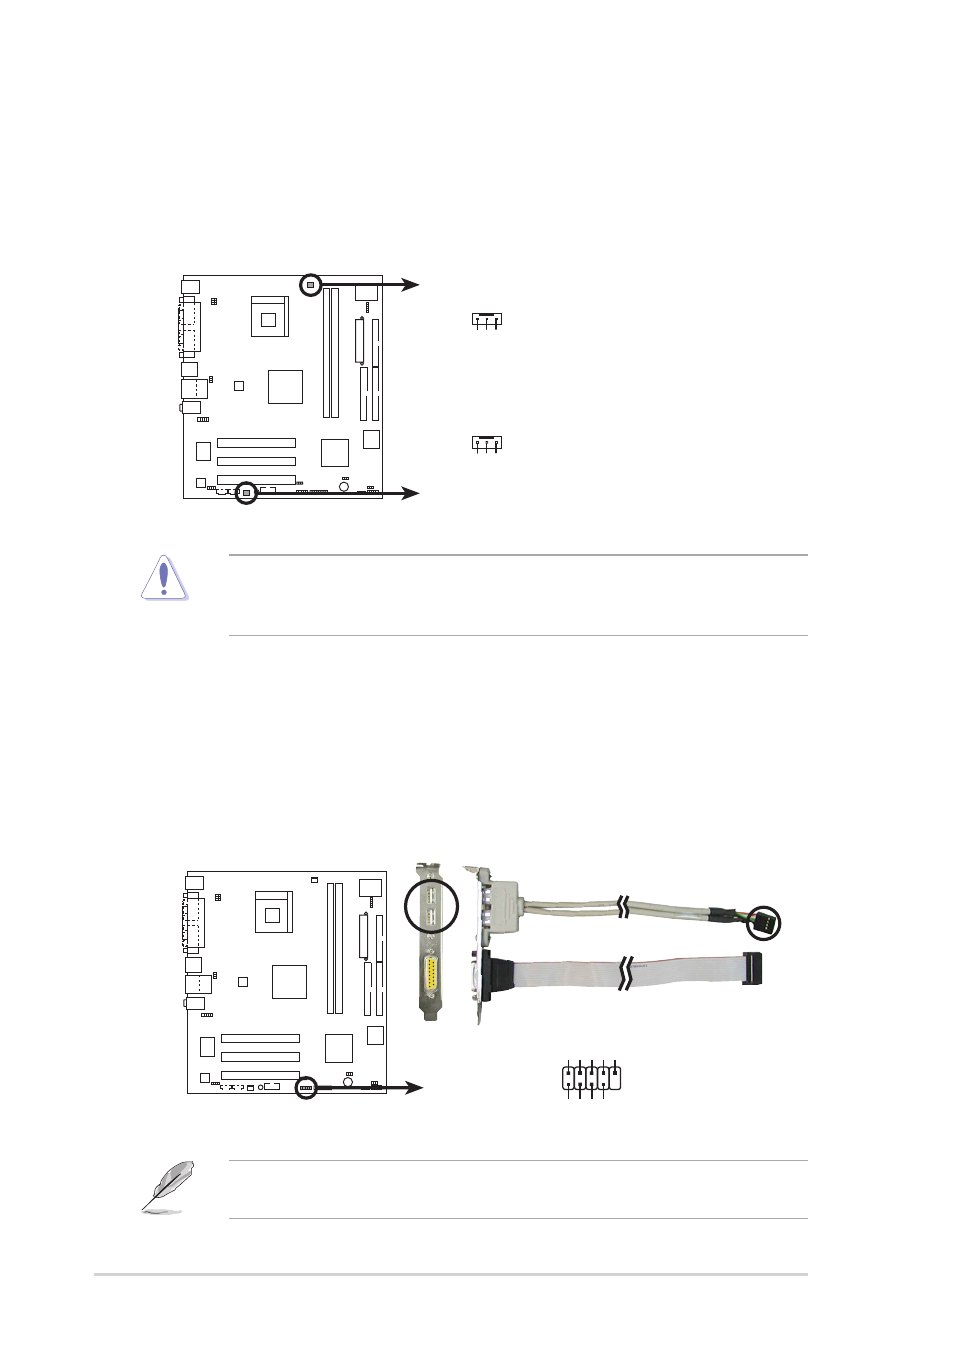 18 Chapter 1 Product Introduction Asus P4bp Mx User Manual Page Usb 2 Pin Wiring Diagram 28 62